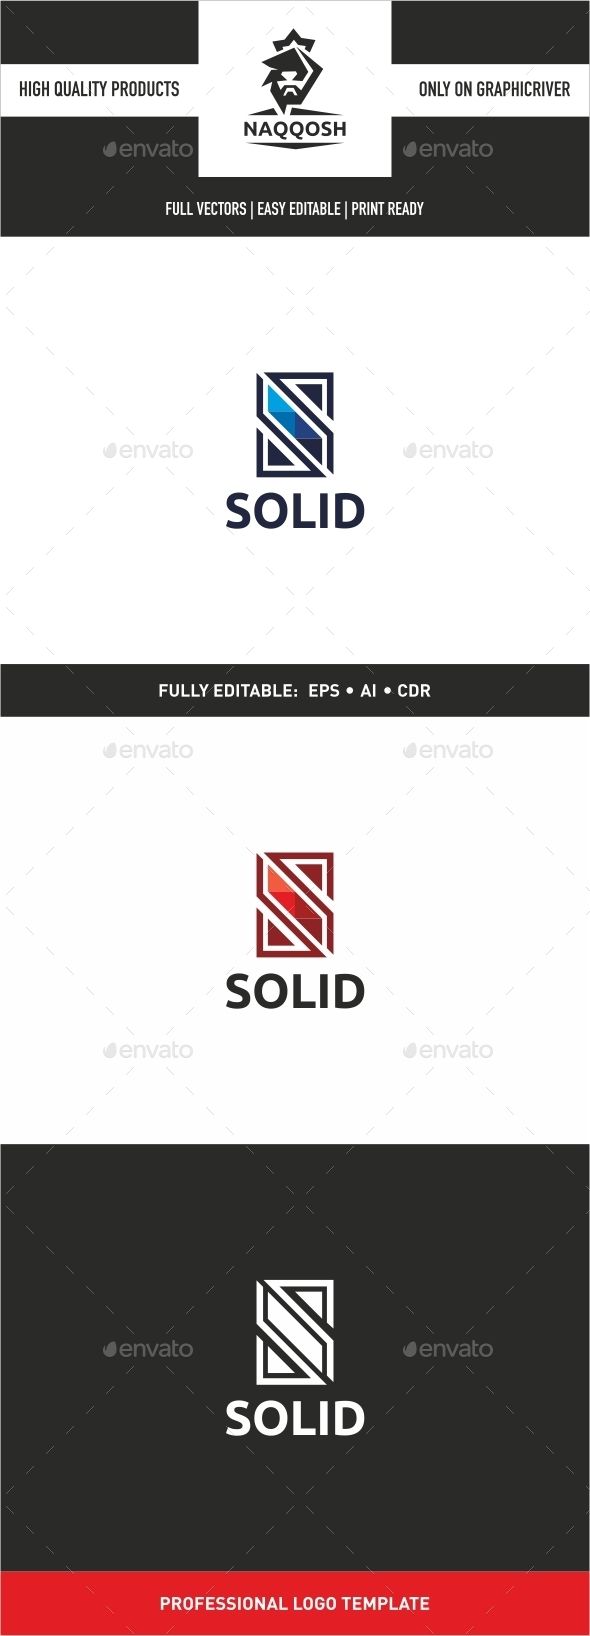 GraphicRiver Solid 9938998